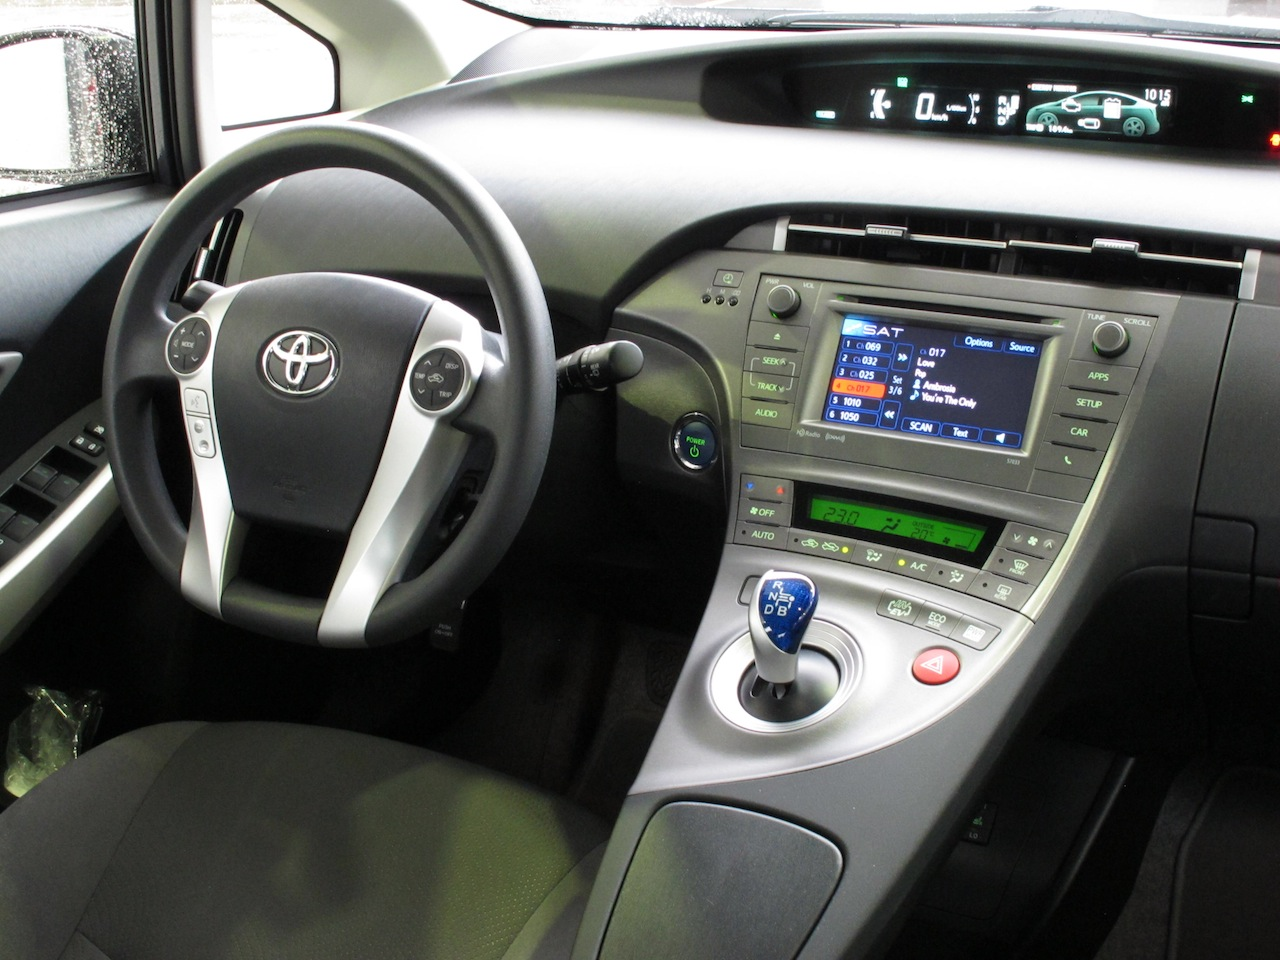 ... 2013 Toyota Prius Plugin Hybrid Gray Interior Dashboard With Steering  Wheel And Controls ...